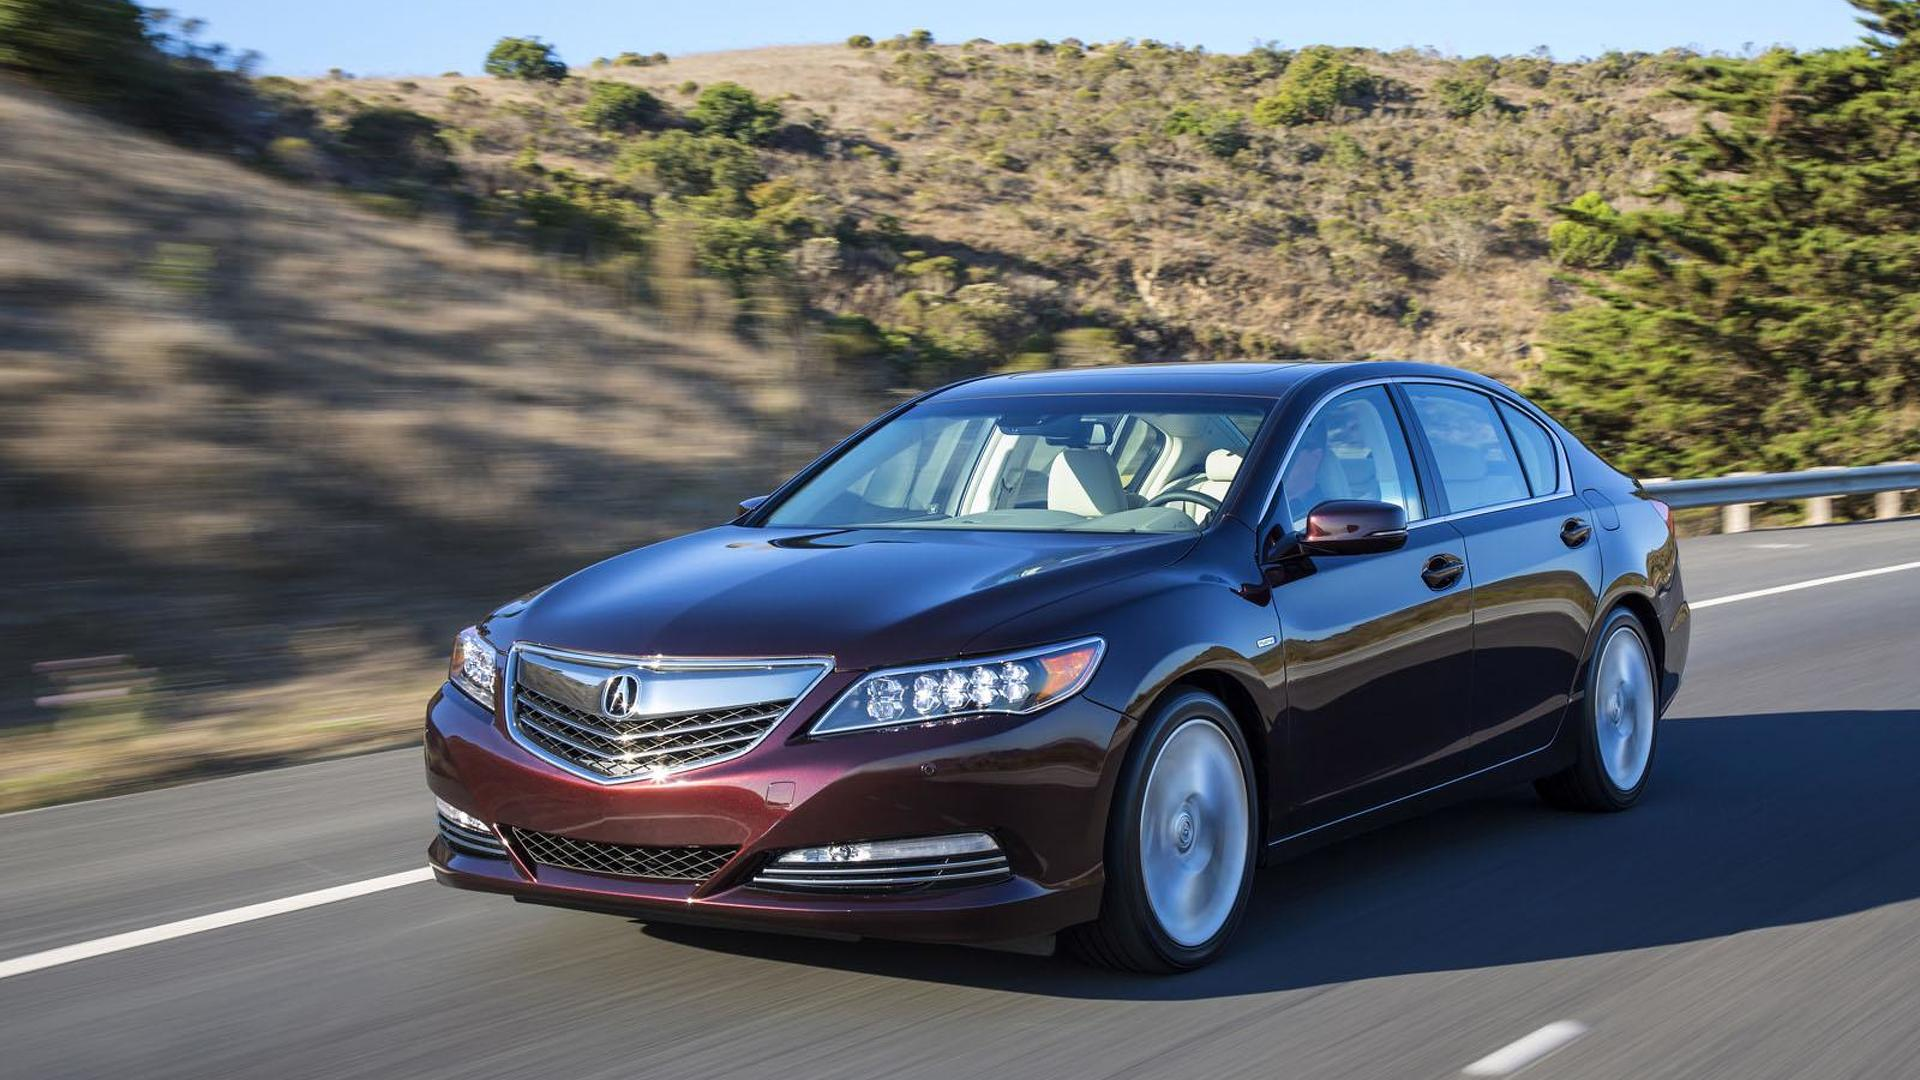 awd news back for how s sale hybride rlx can get auto acura l here its sh heres mojo mouth driving motor sport canada